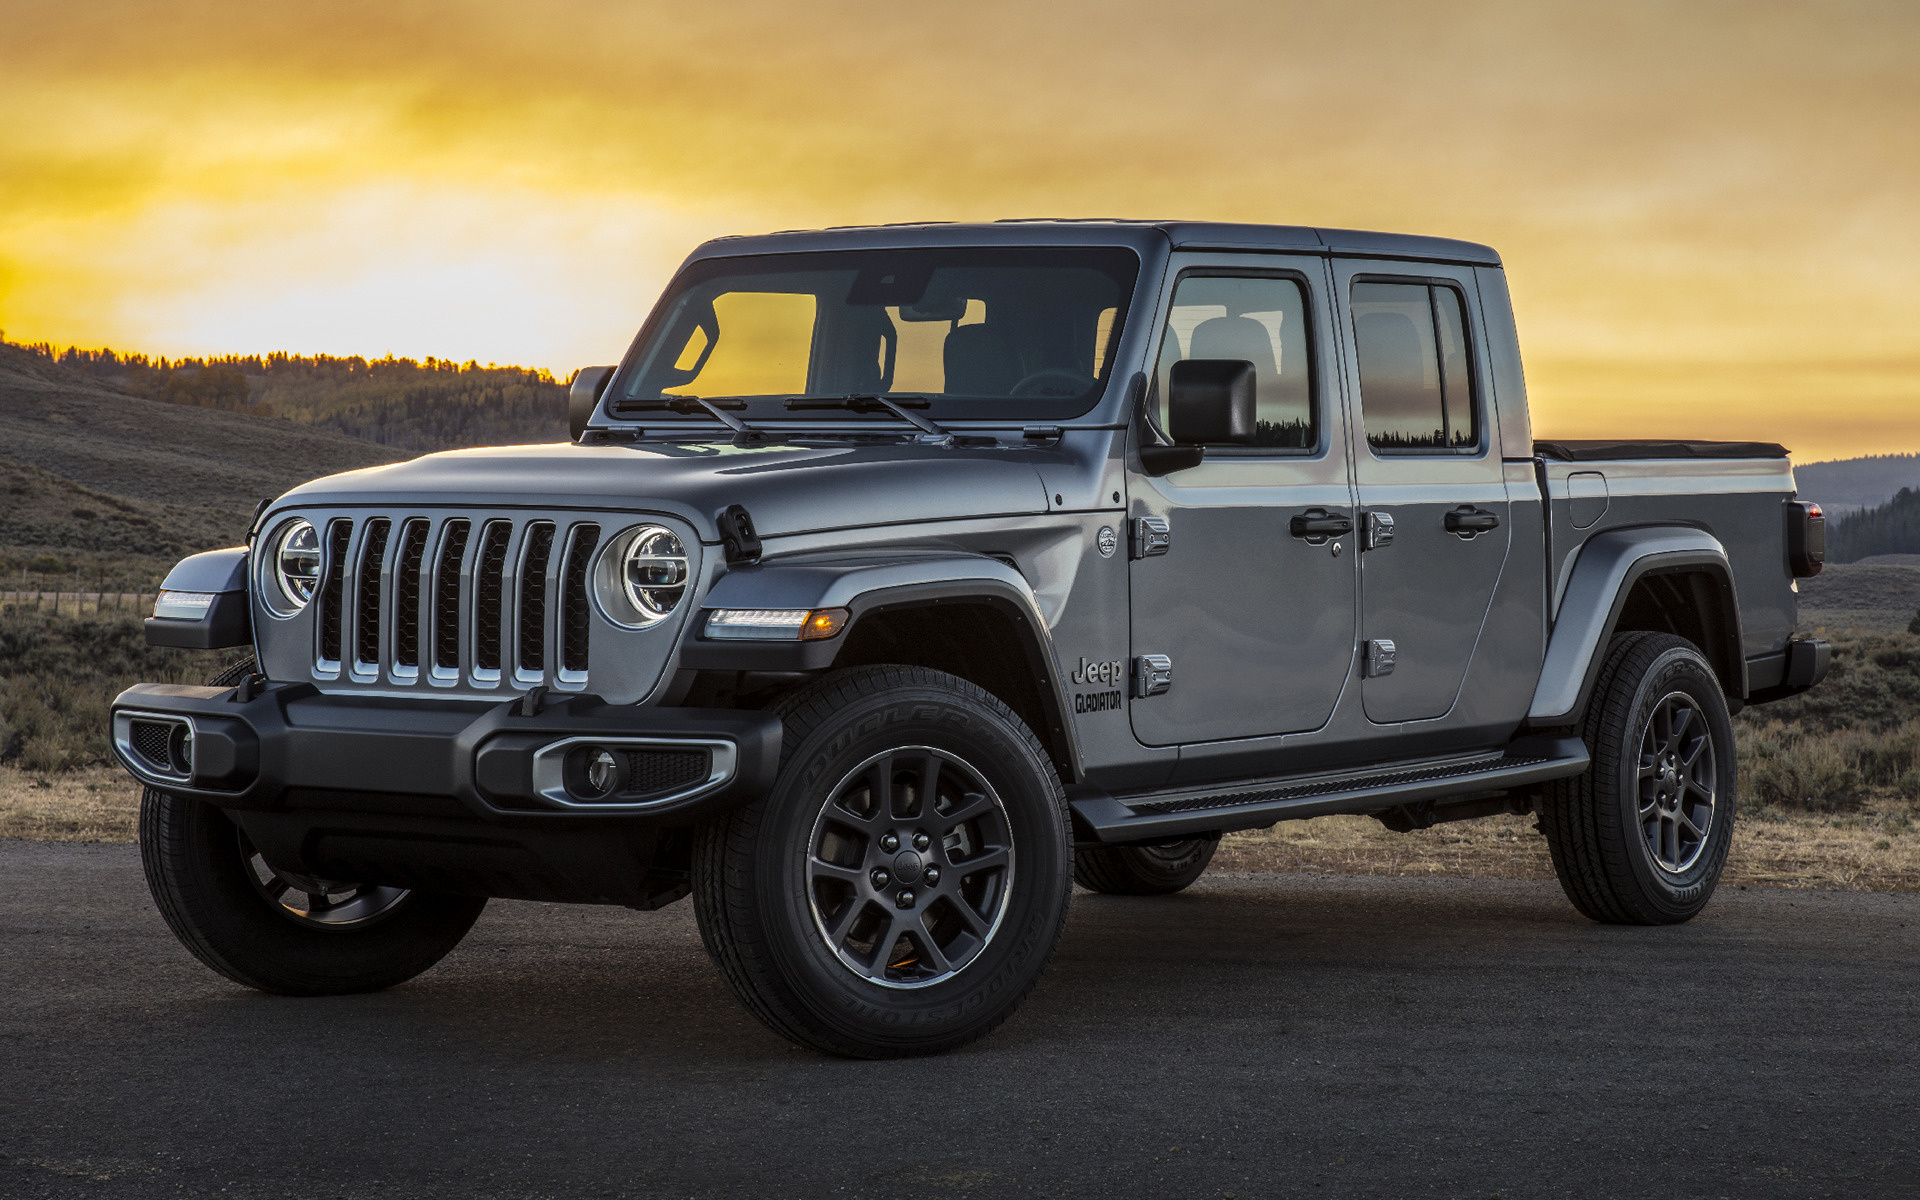 Used Lifted Trucks For Sale >> 2020 Jeep Gladiator Overland - Wallpapers and HD Images | Car Pixel